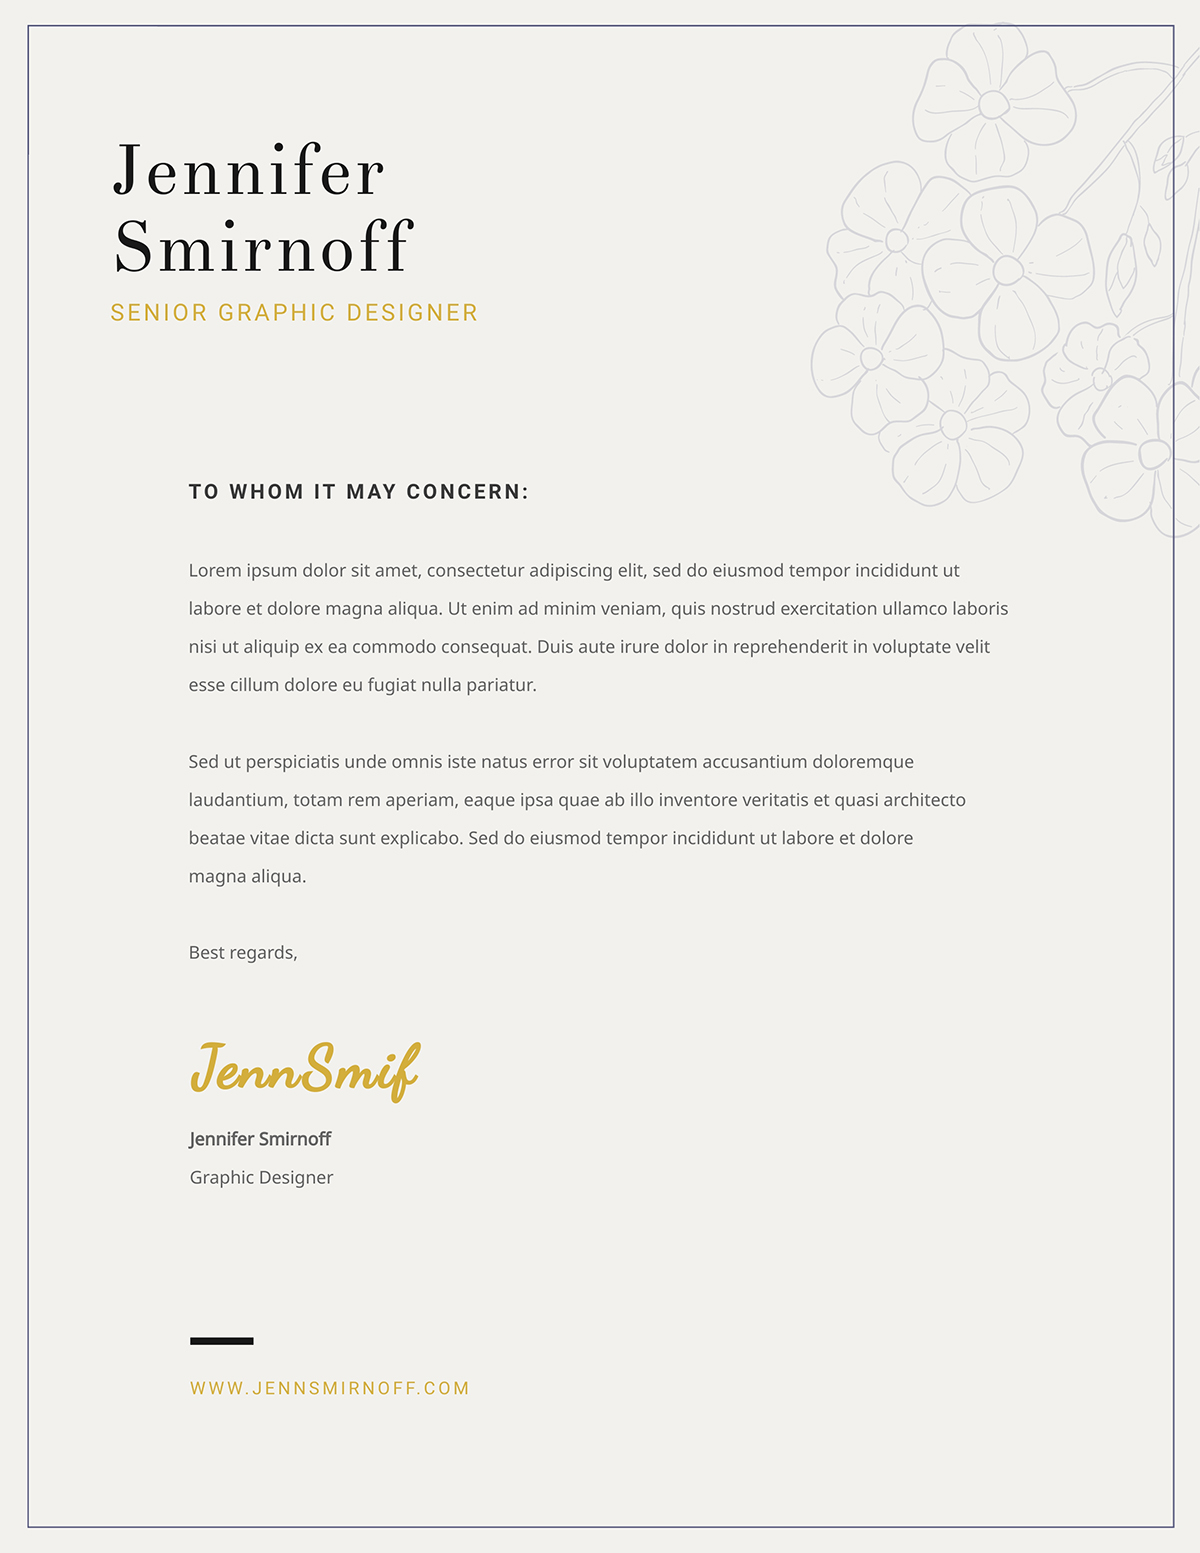 A graphic design letterhead template available in Visme.